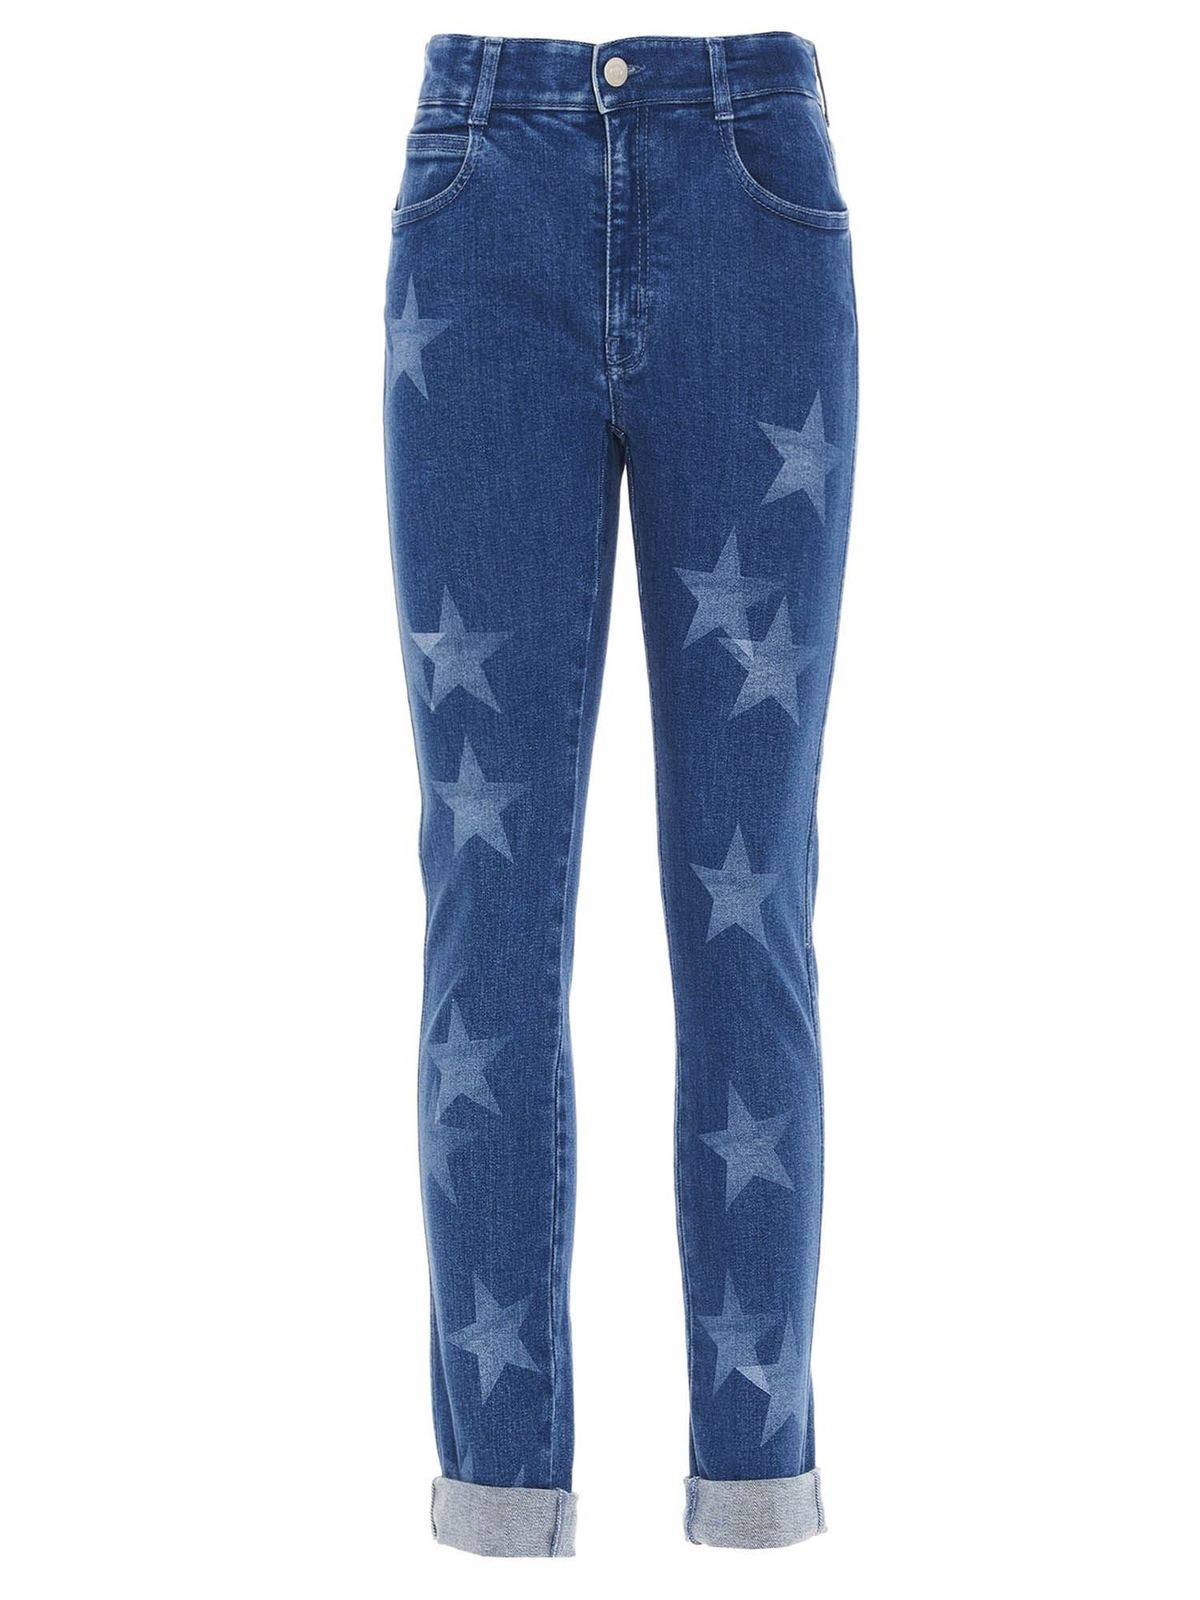 Stella Mccartney NEW STARS JEANS IN BLUE